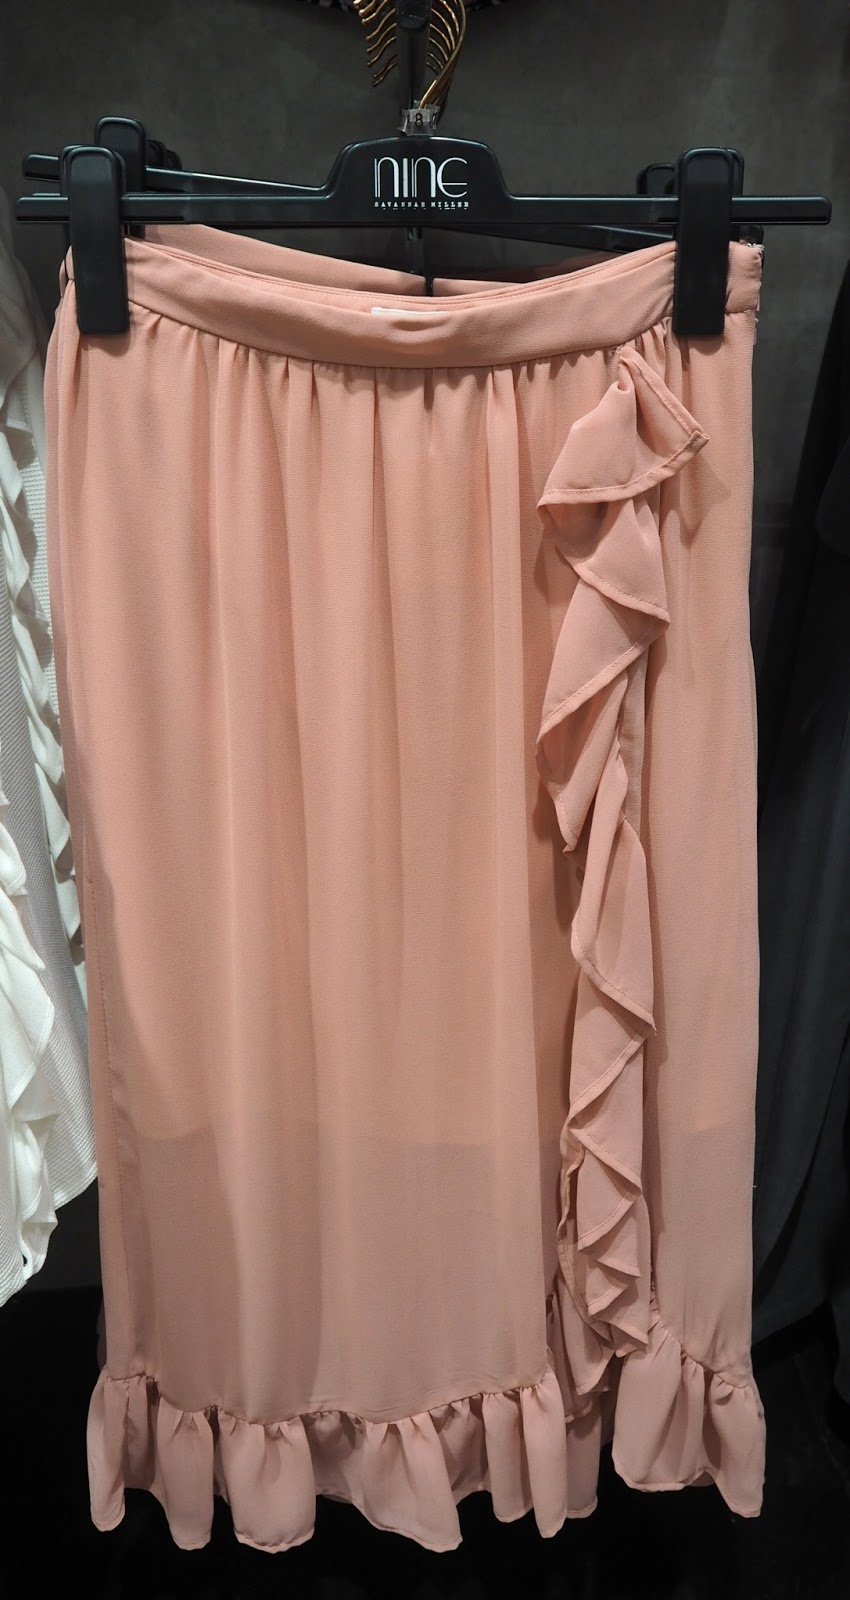 Nine By Savannah Miller Pink Frill Skirt